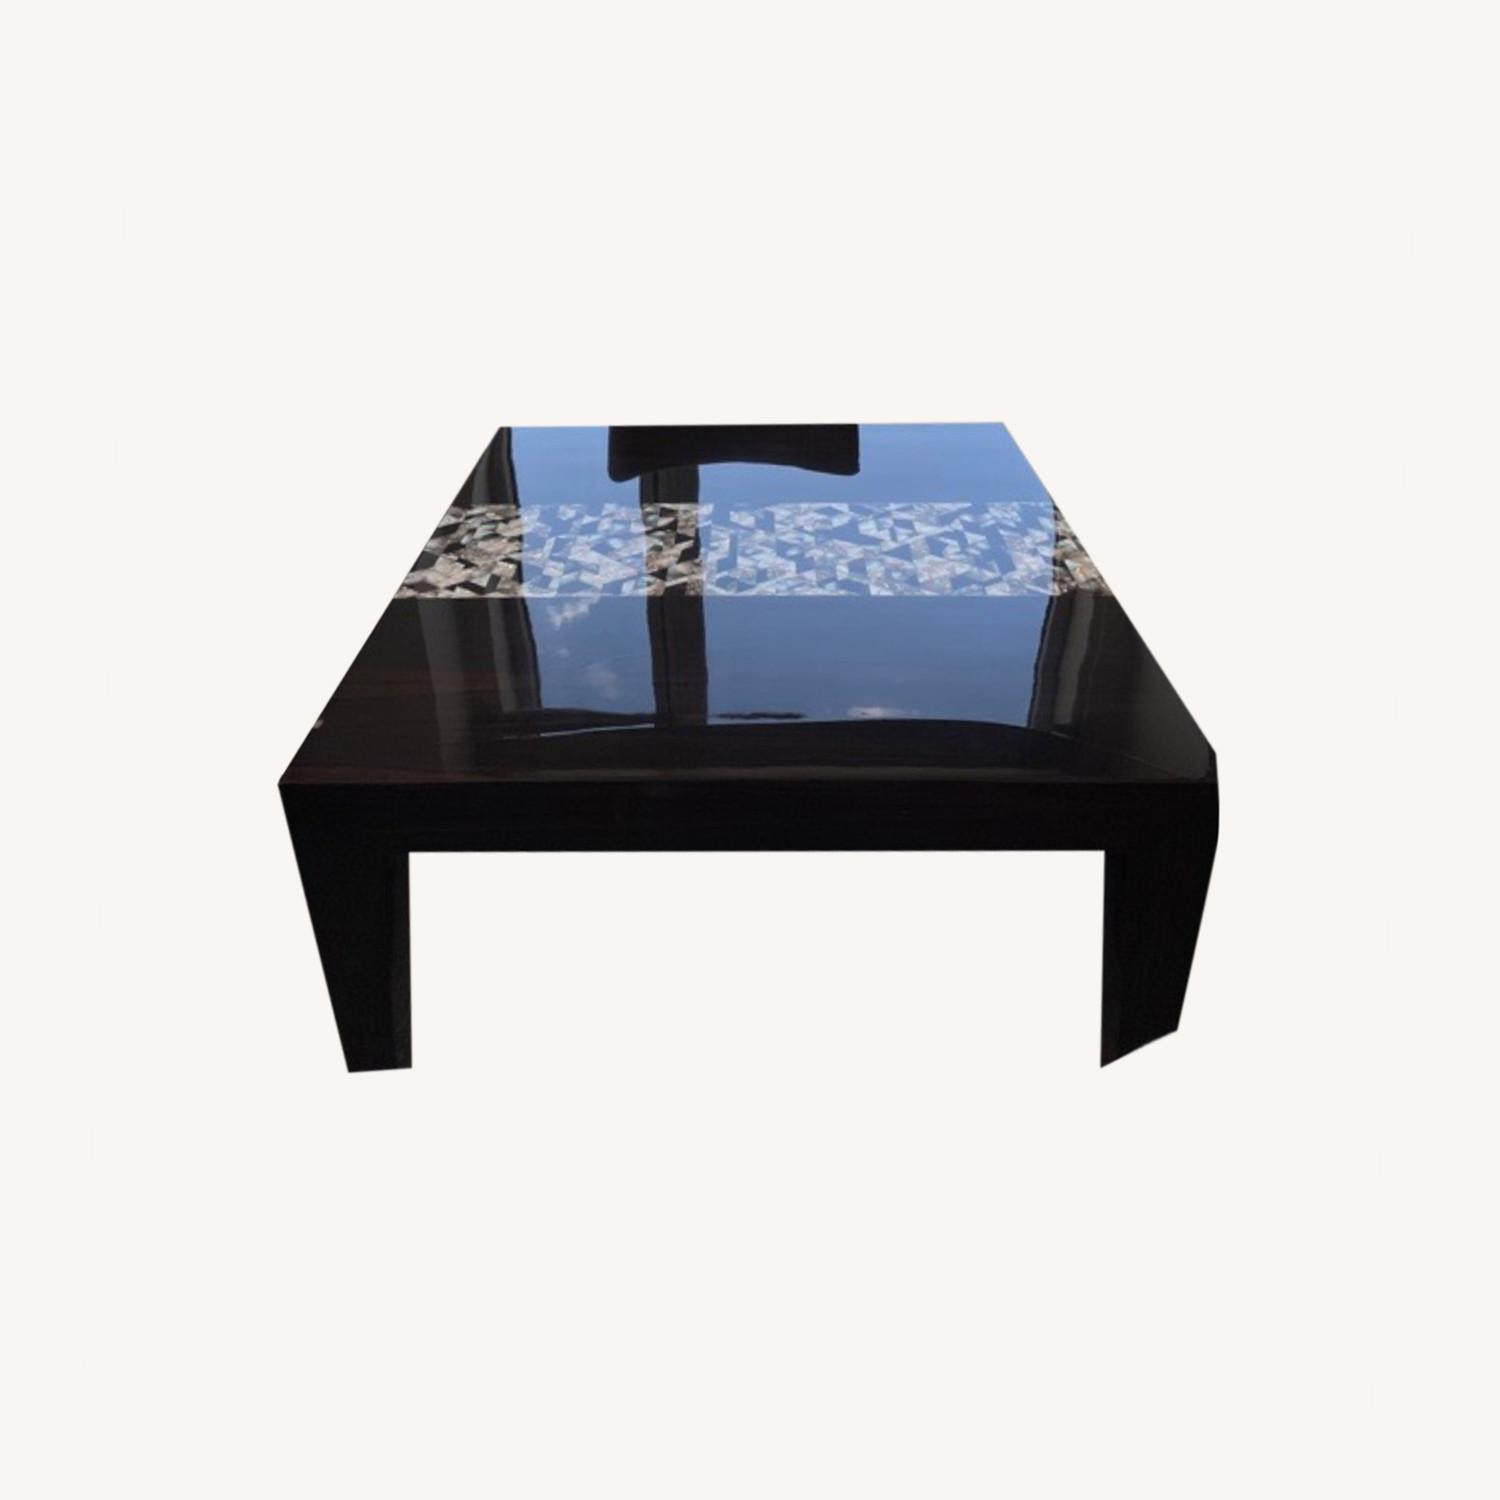 Custom Dining Table with Mother of Pearl Inlay - image-0